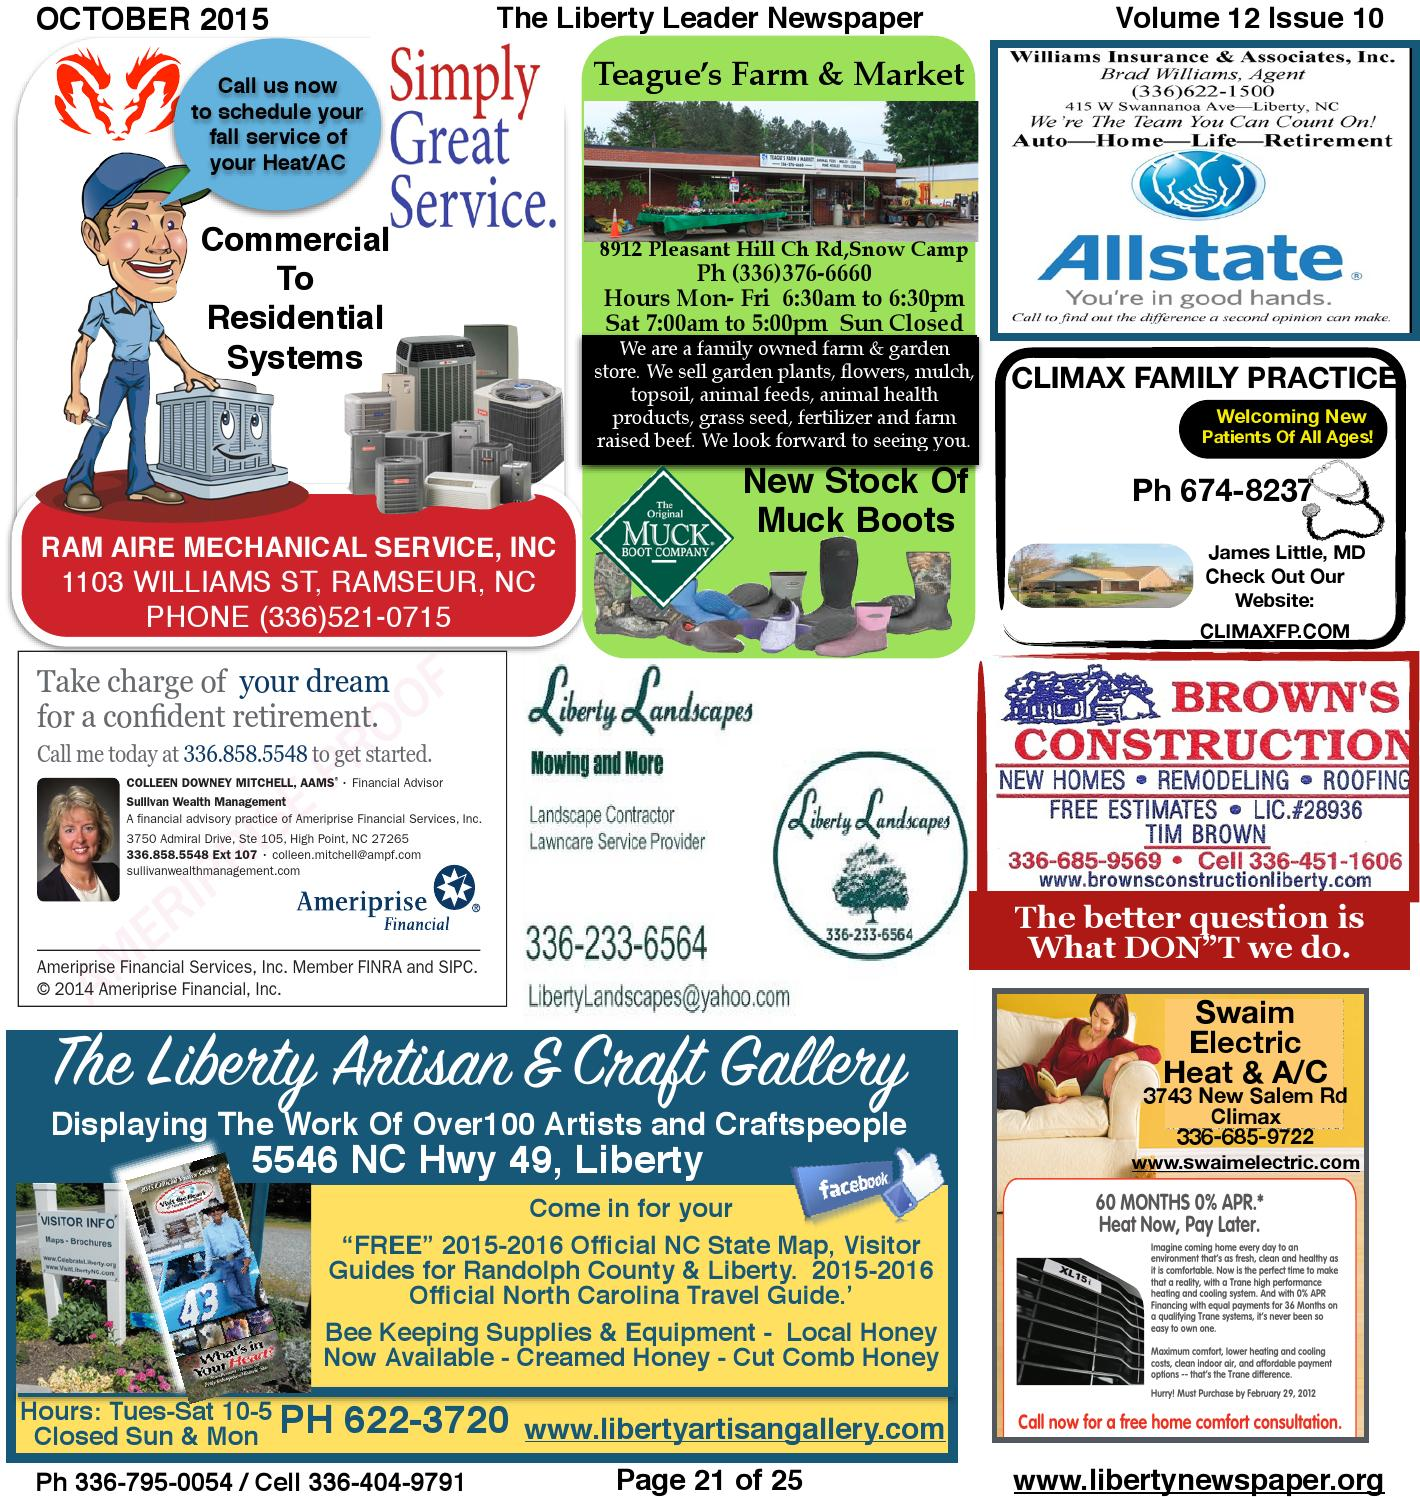 Liberty Leader Newspaper Oct 2015 By Kevin Bowman Issuu